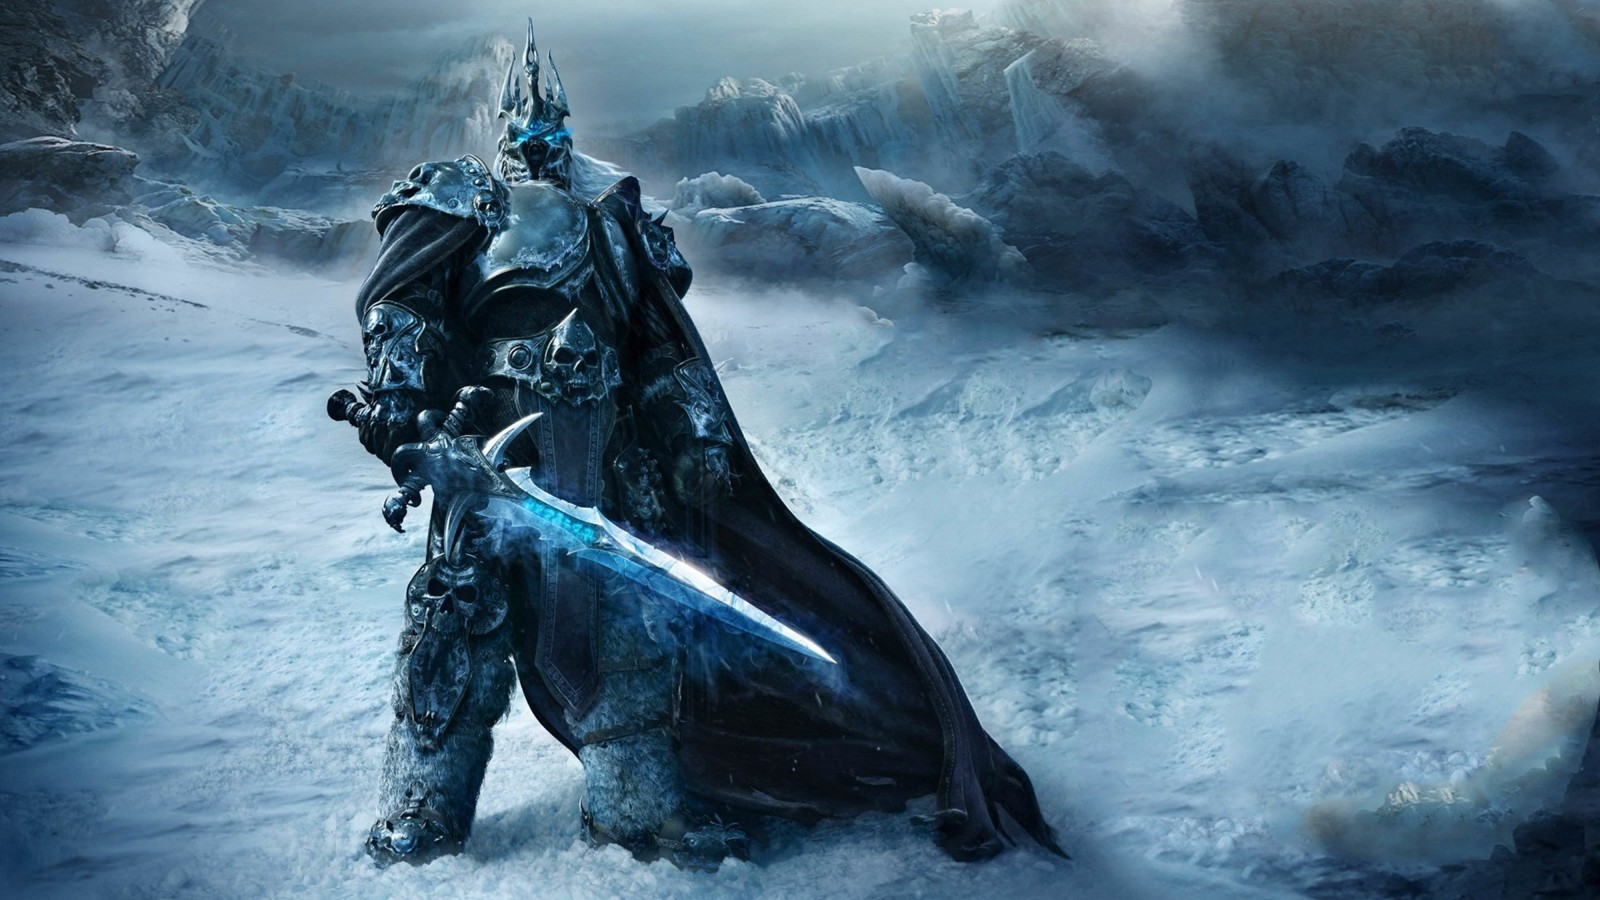 World of Warcraft: Wrath of the Lich King Wallpaper for Desktop 1600x900